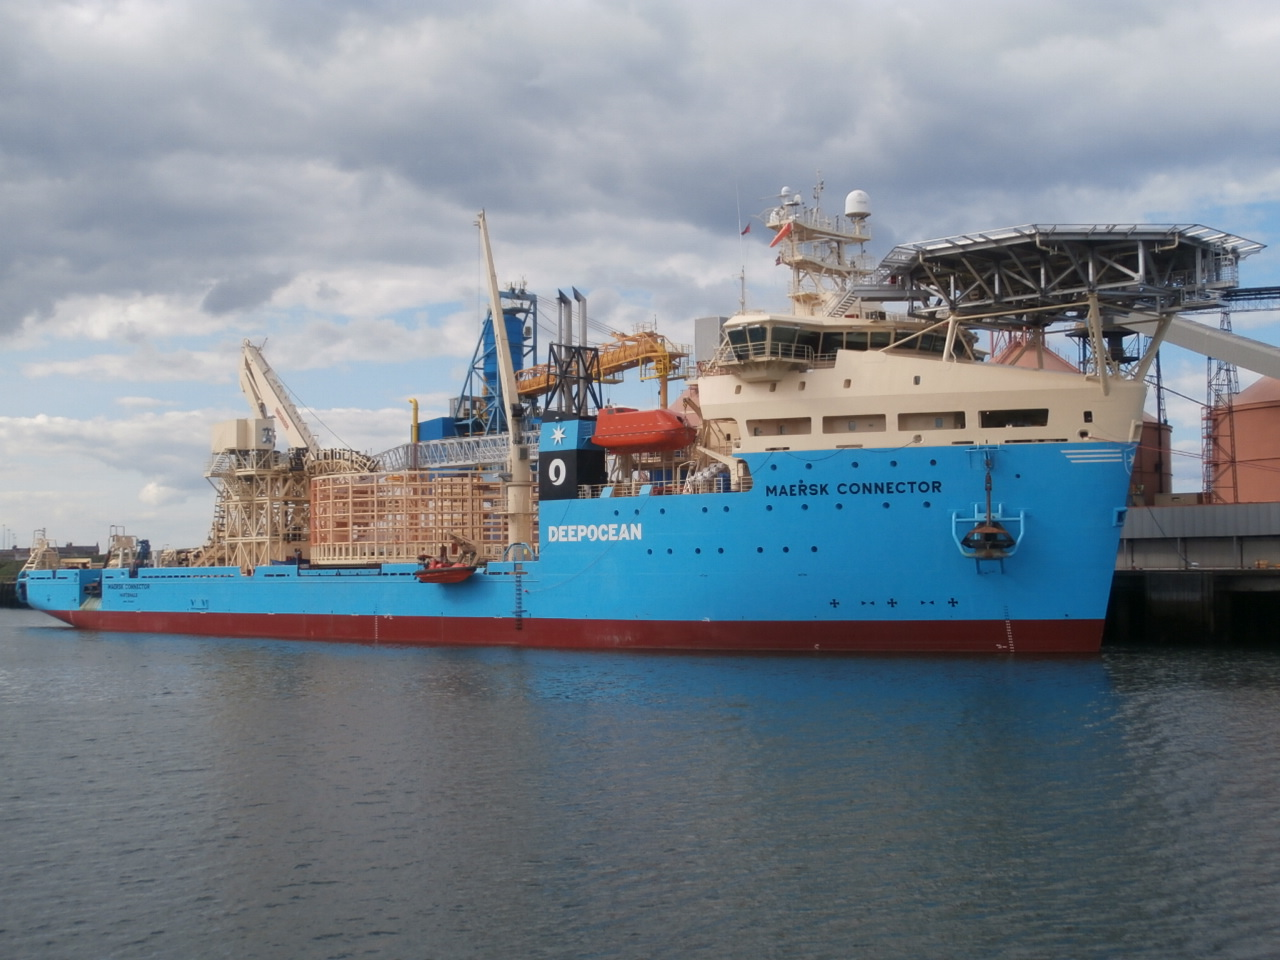 maersk connector alcan 1.JPG